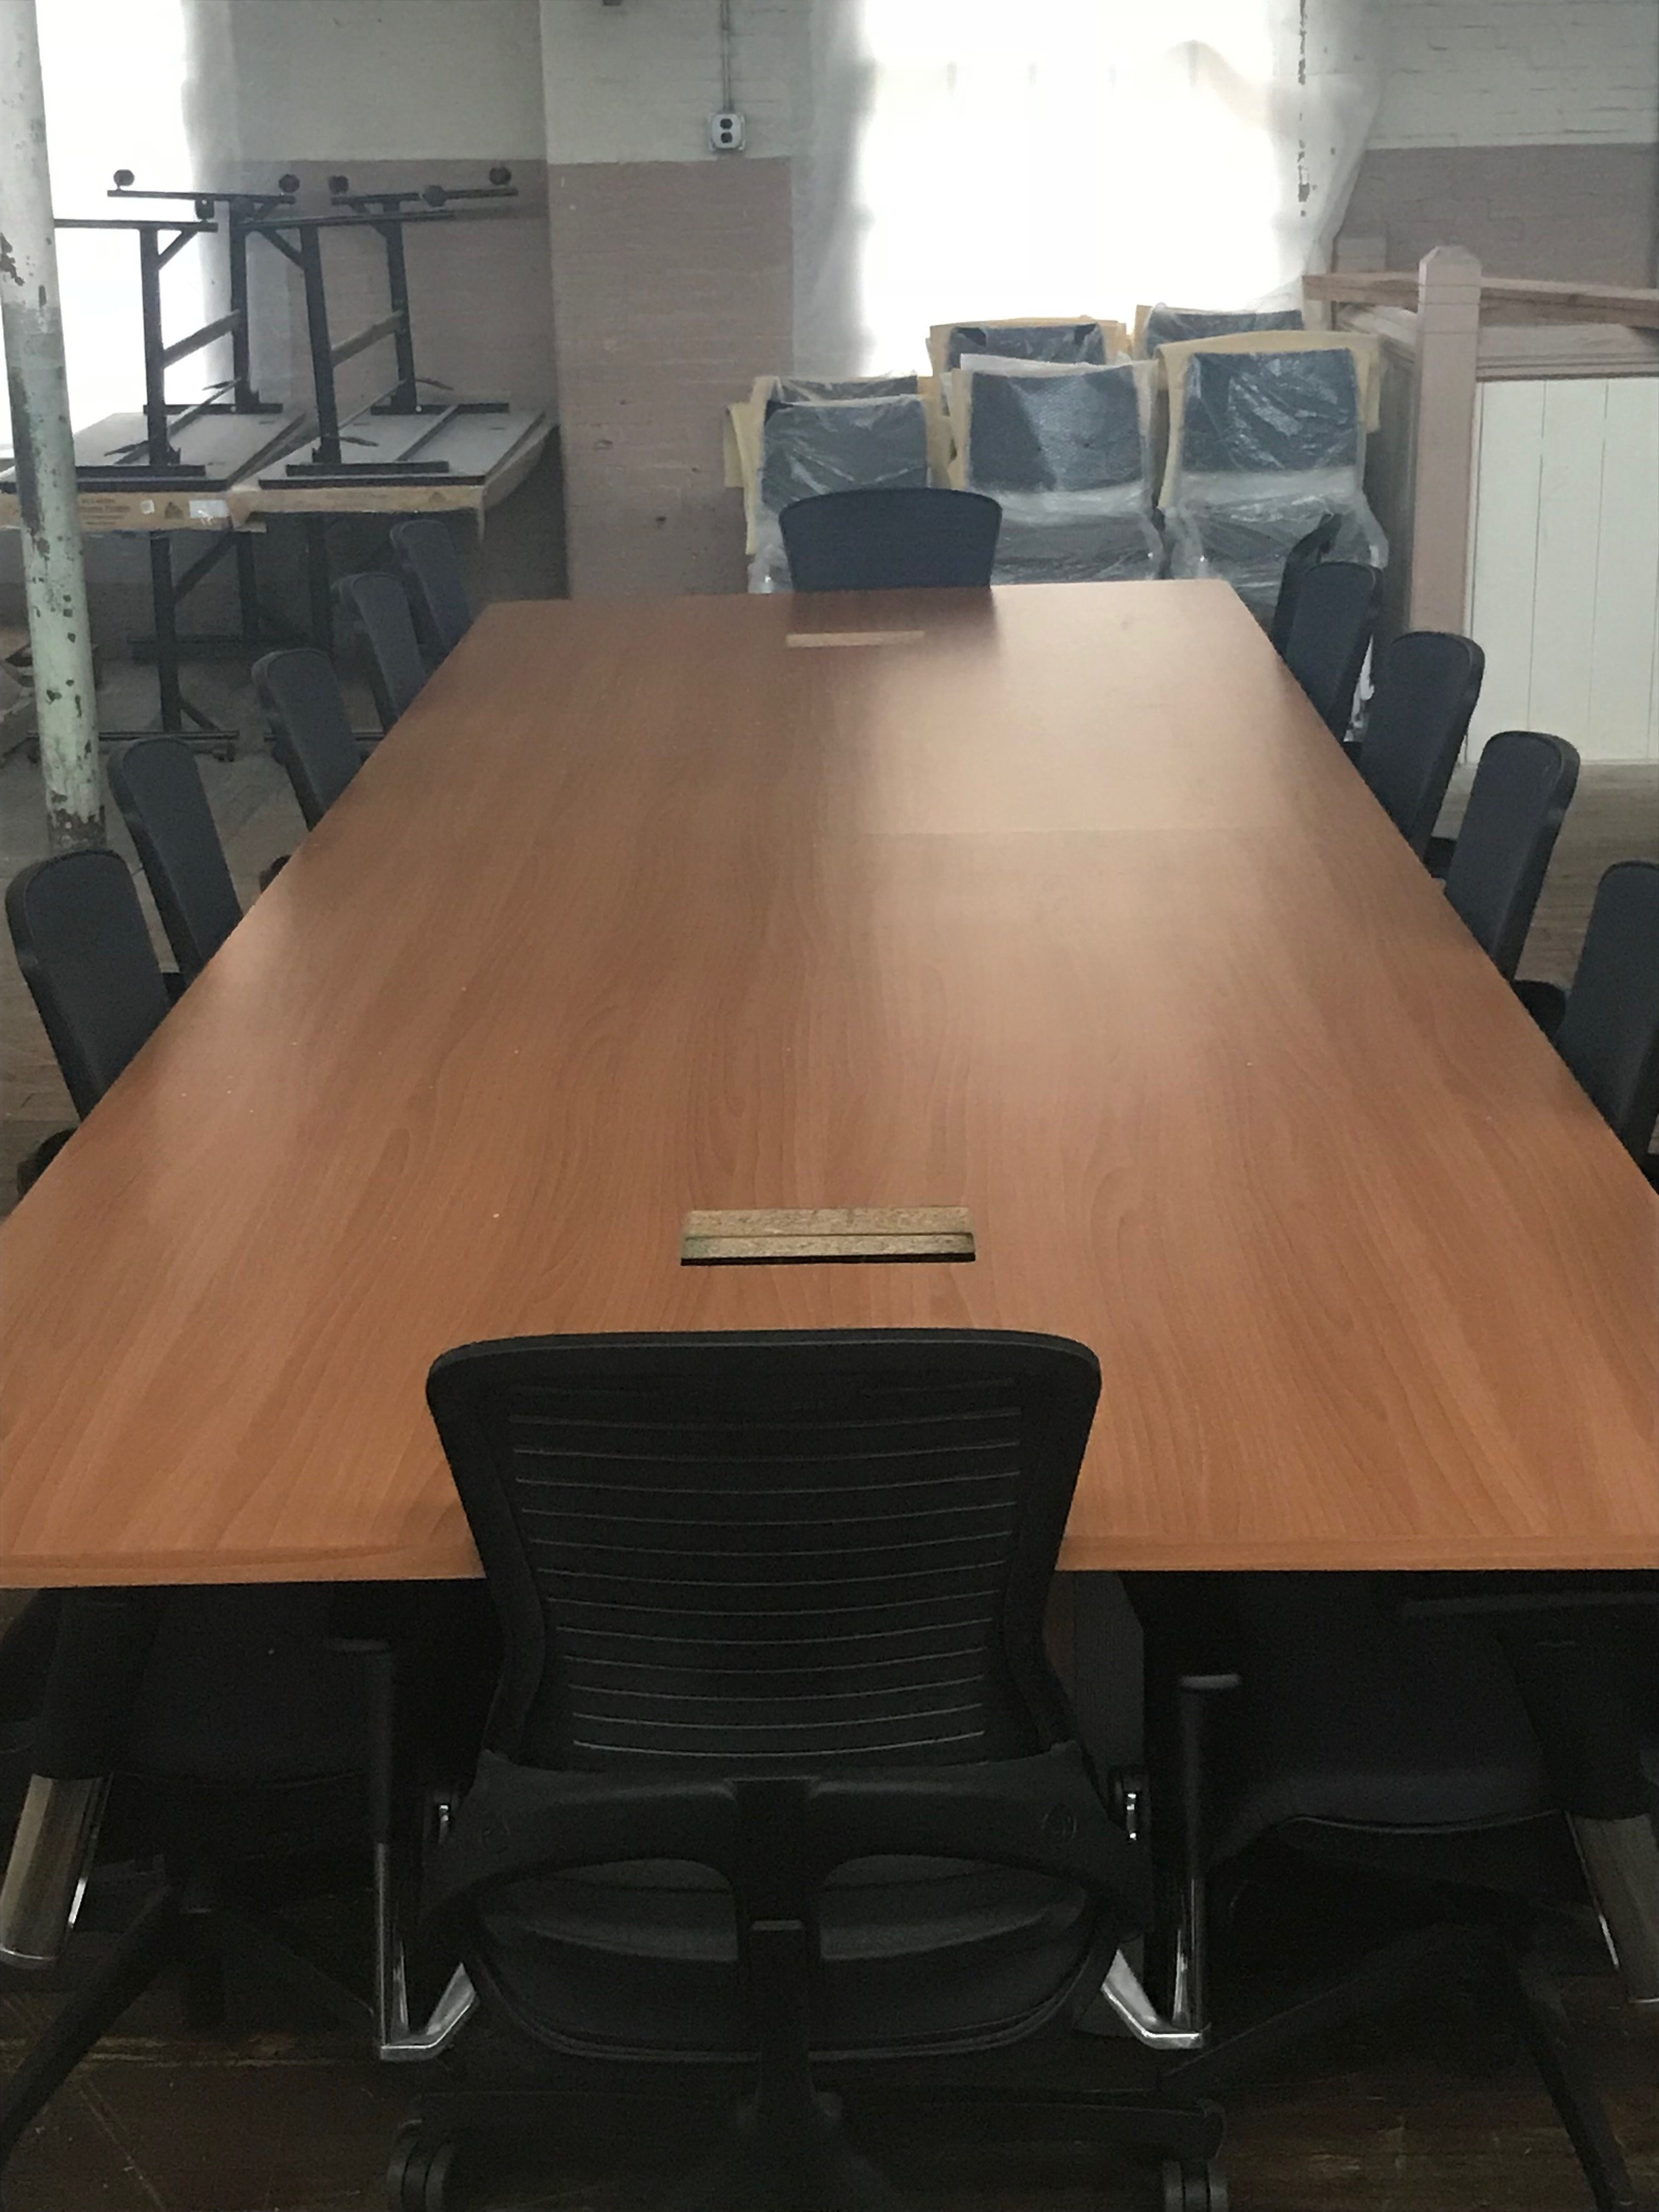 tables product table angled furniture office chairs with conference